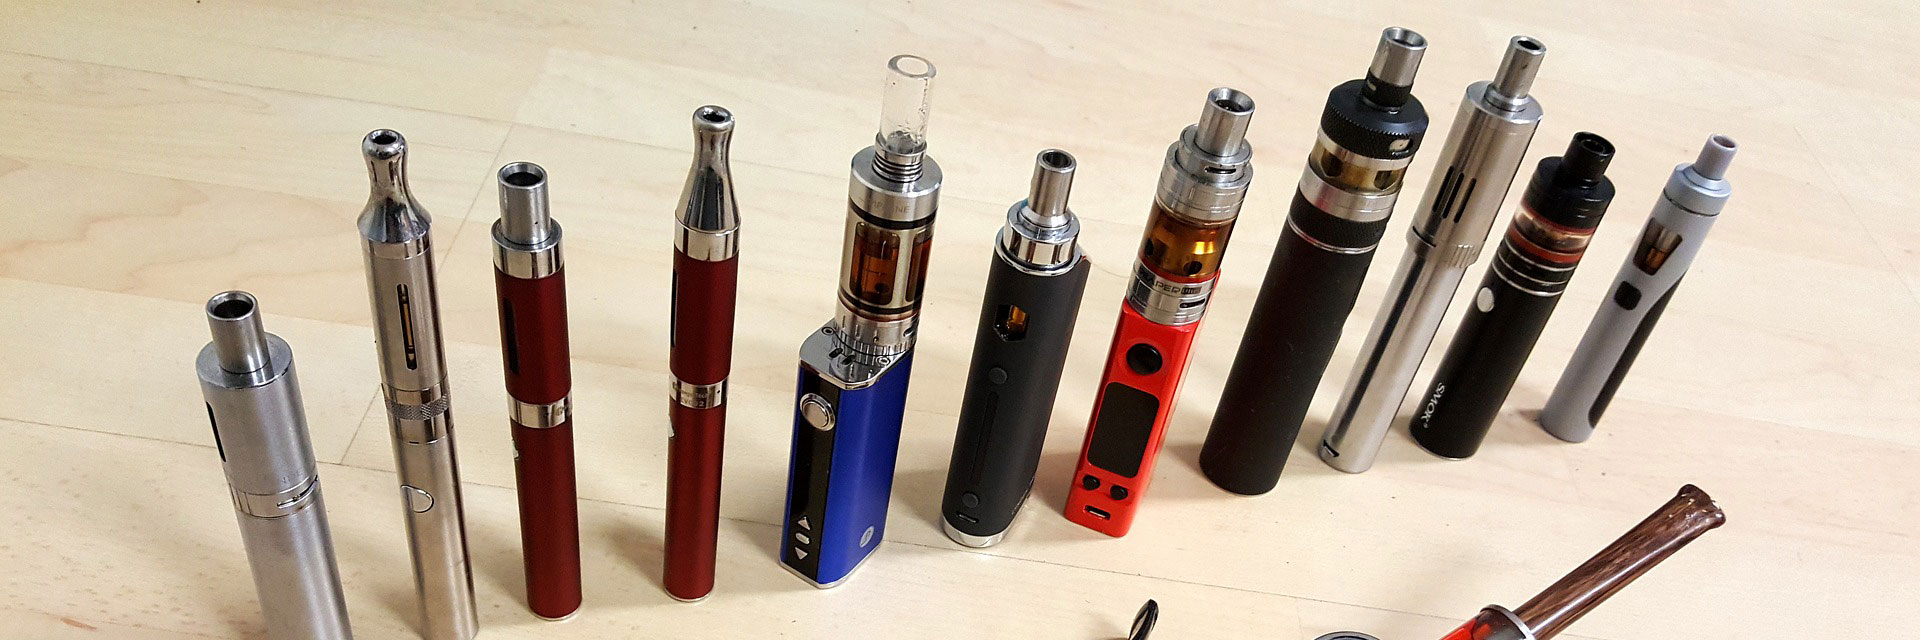 E-Cigarette Collection